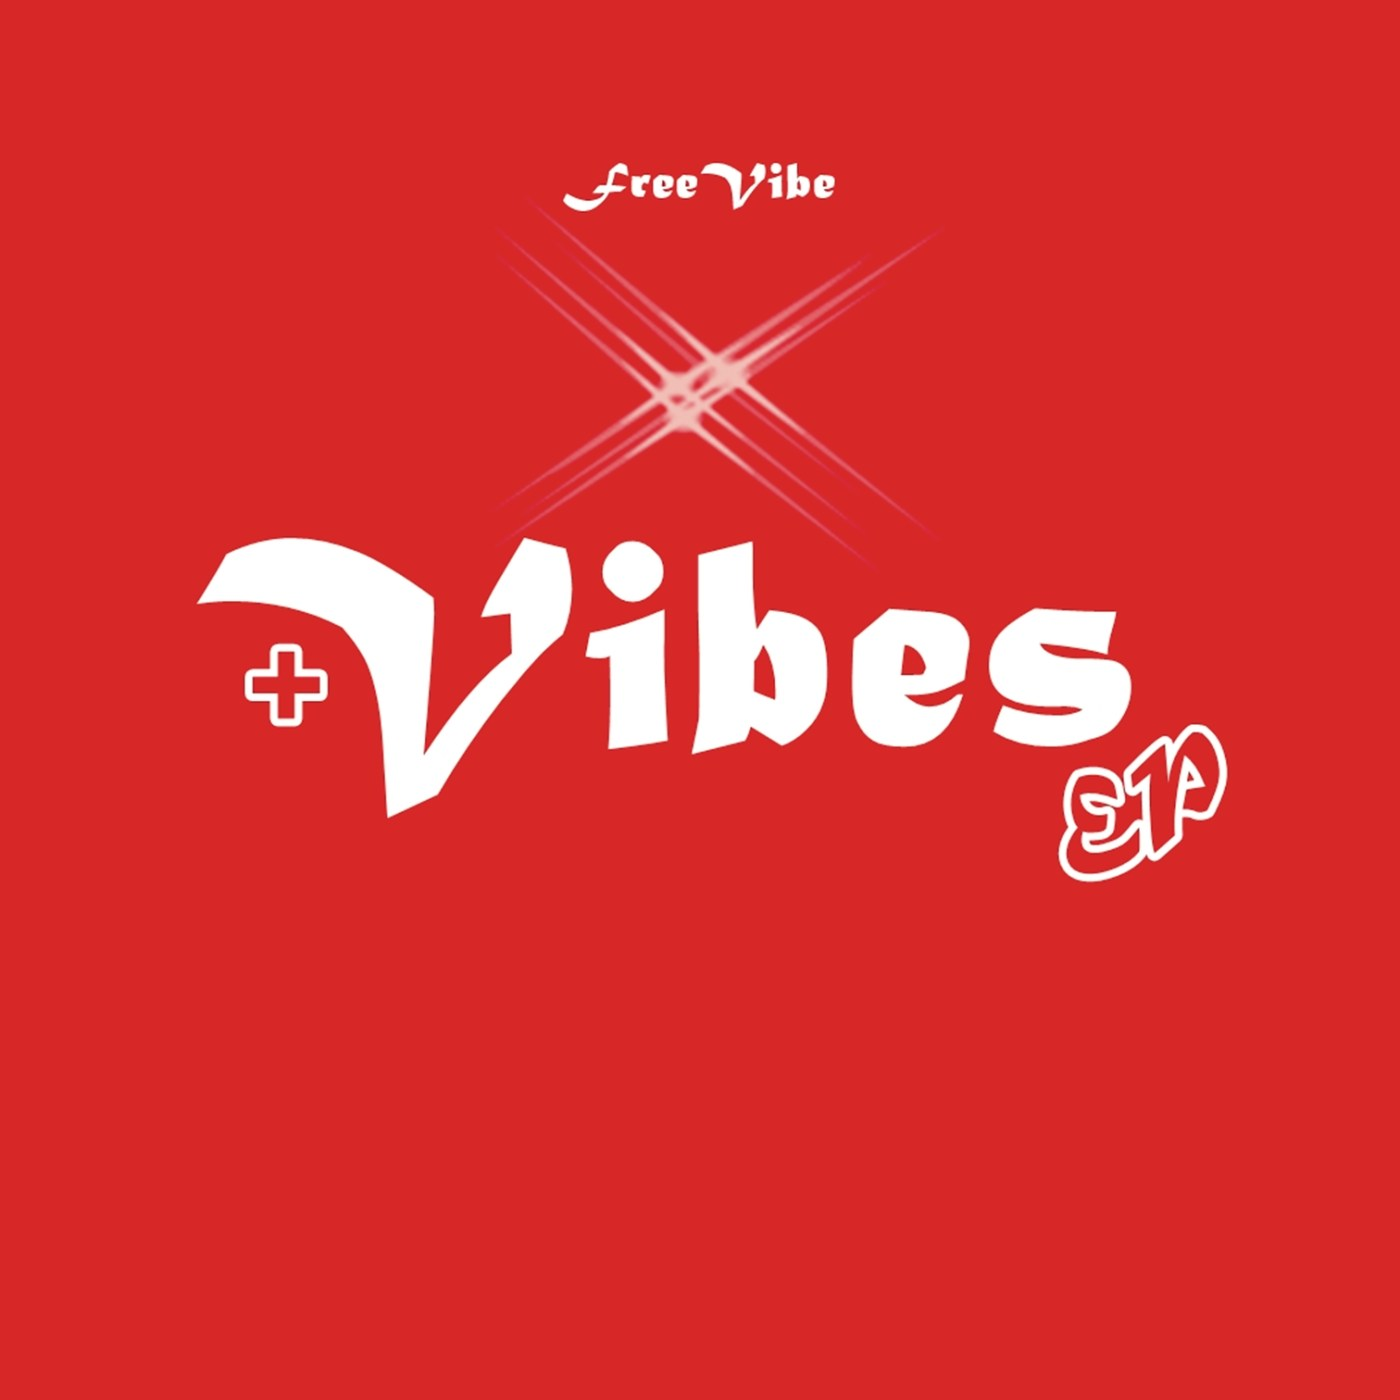 FreeVibe - +Vibes EP